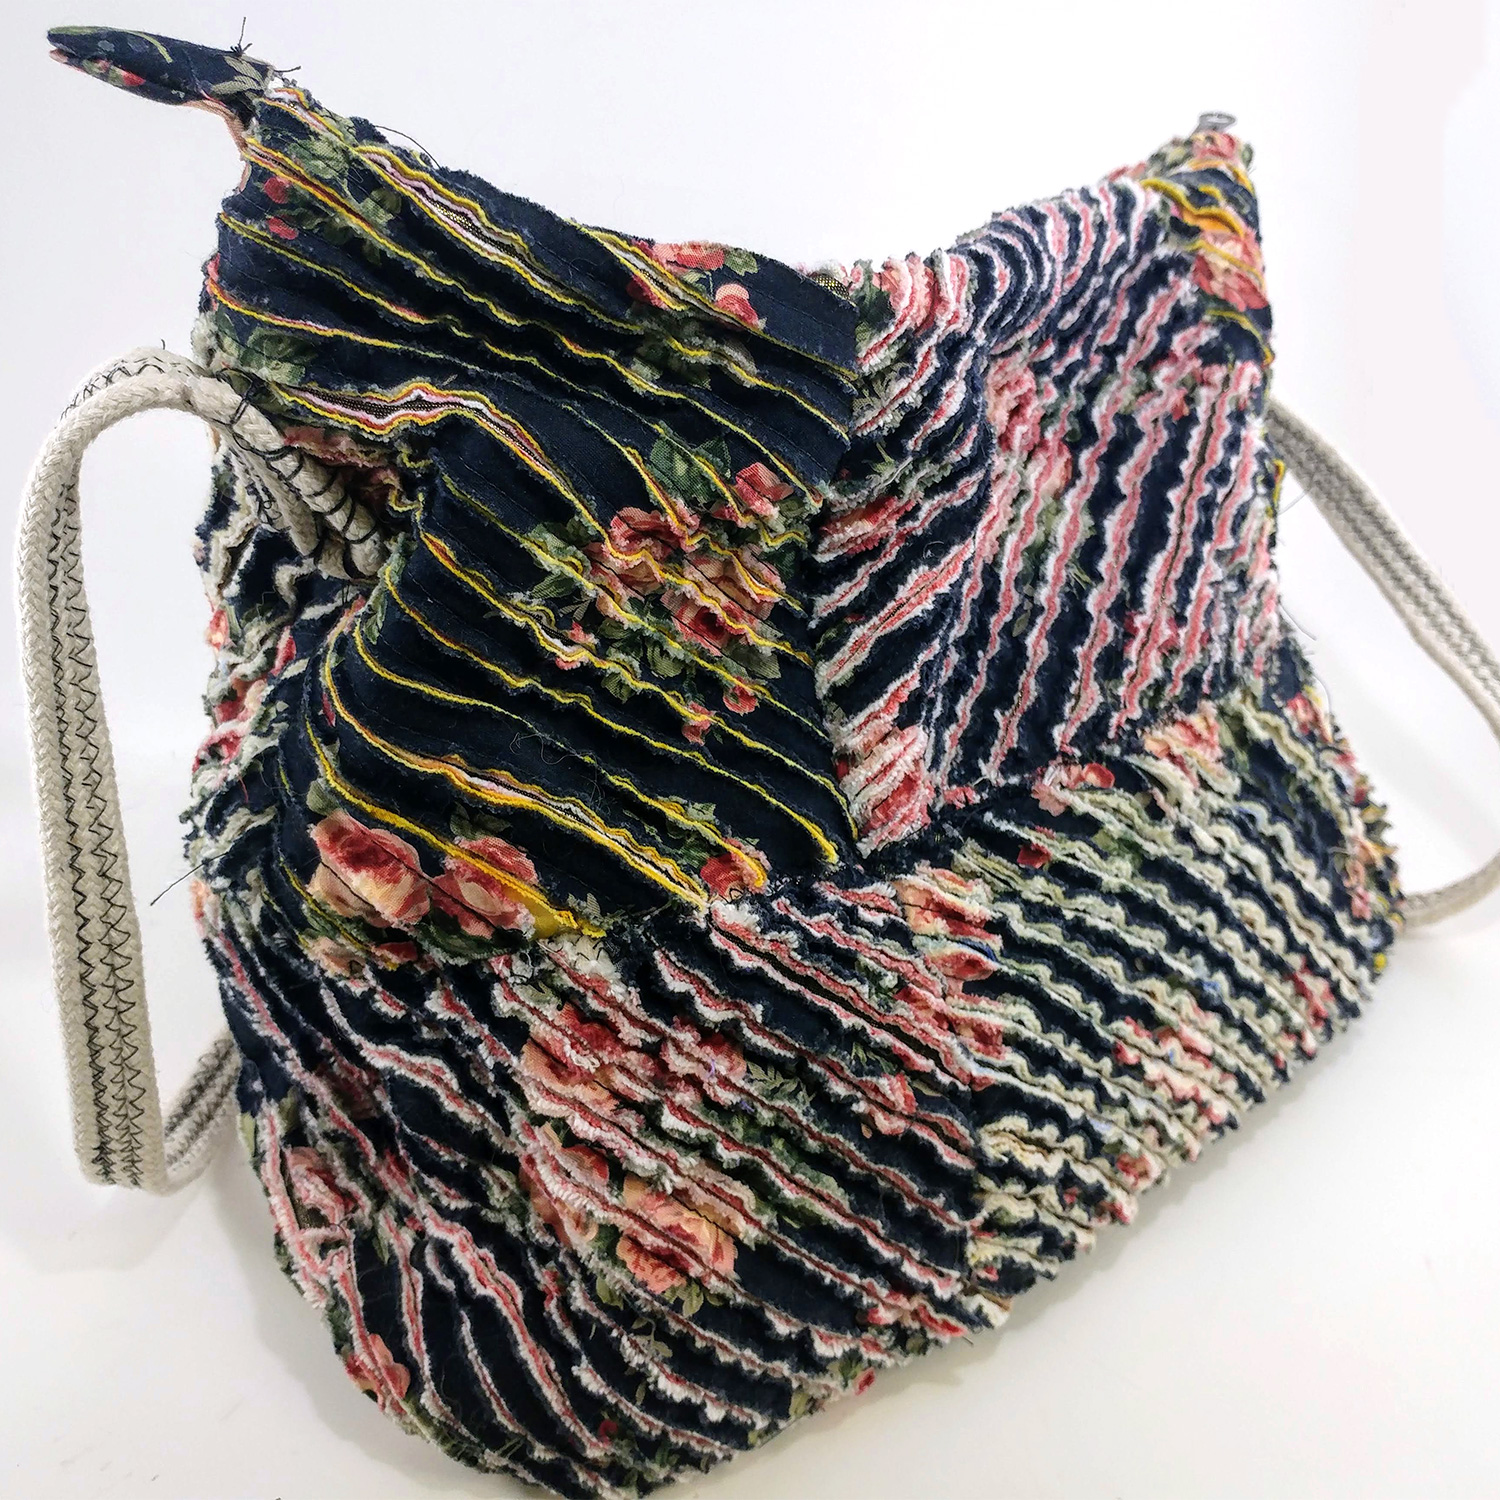 bags-and-purses-01.jpg